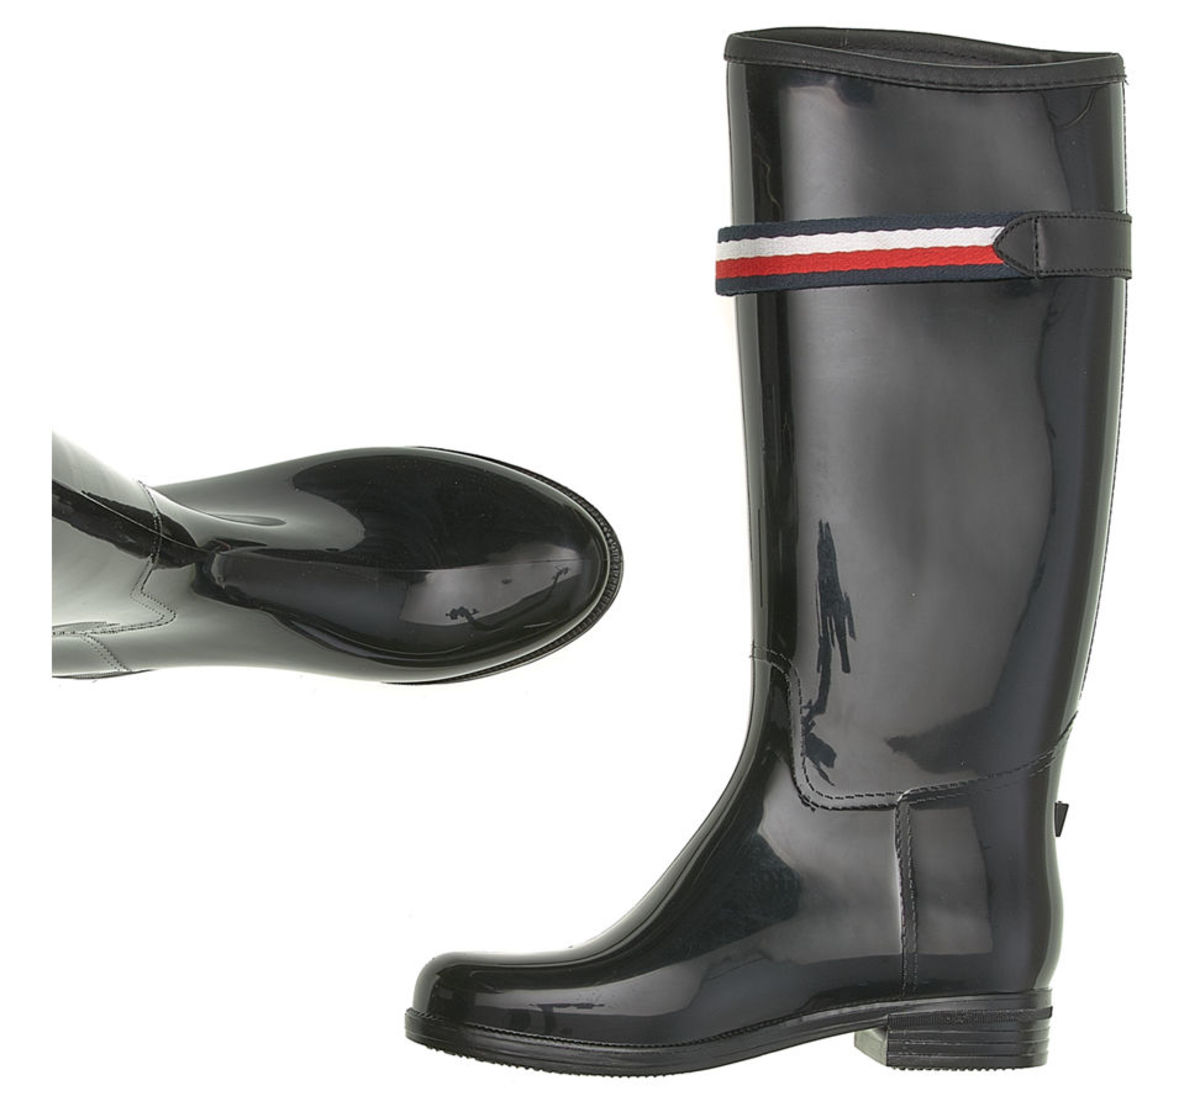 Bild 2 von Tommy Hilfiger Gummistiefel - CORPORATE BELT LONG RAIN BOOT